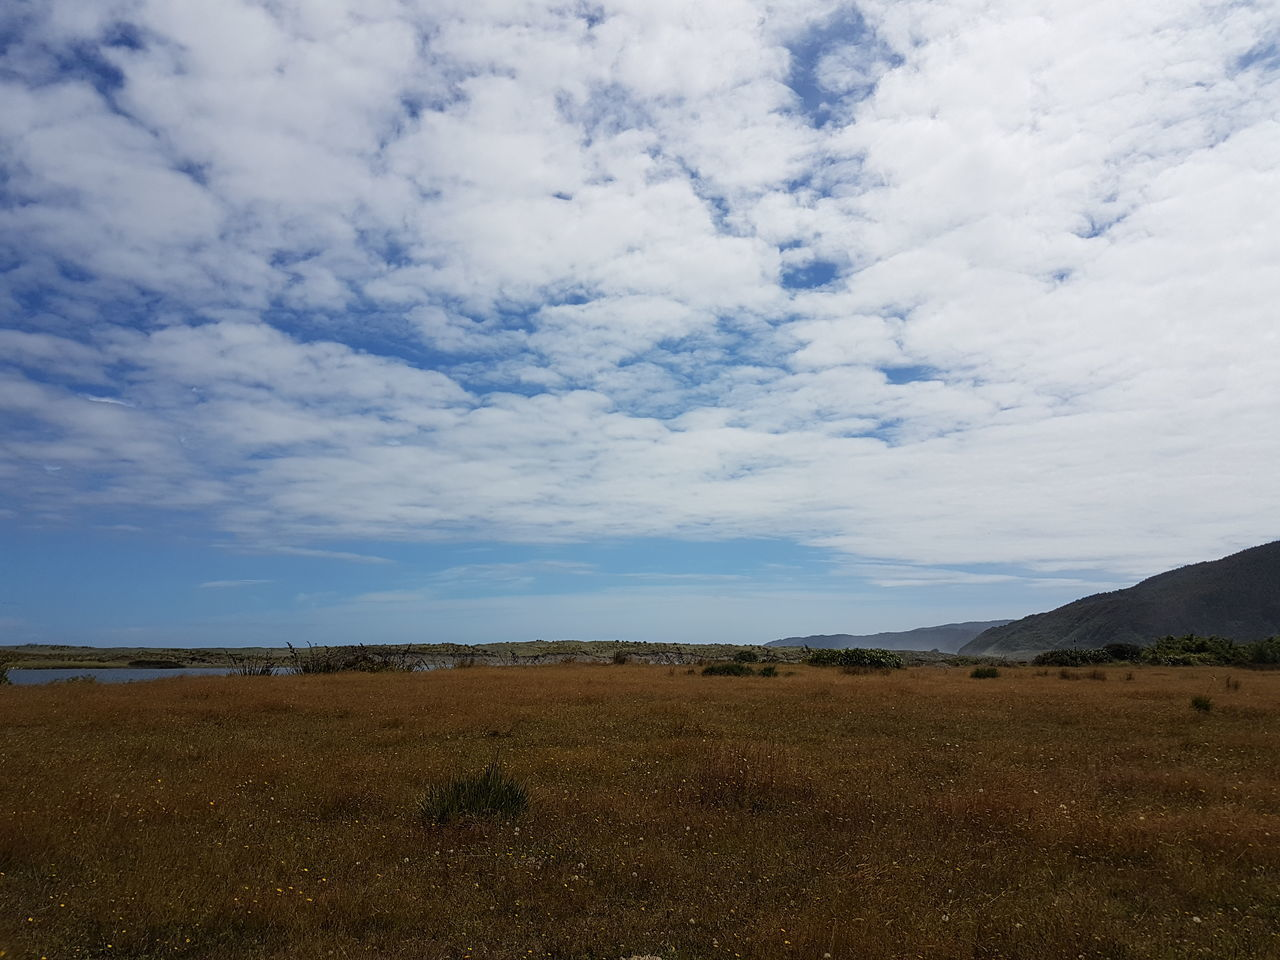 Landscape Cloud - Sky Outdoors Sky Nature Sand Scenics No People Day Agriculture Water The Purist (no Edit, No Filter) Earth Perspective Traveling Inspirations Exploring Lifestyles Offroad Beauty In Nature Beach Emotional Photography Hope Simplicity Chile